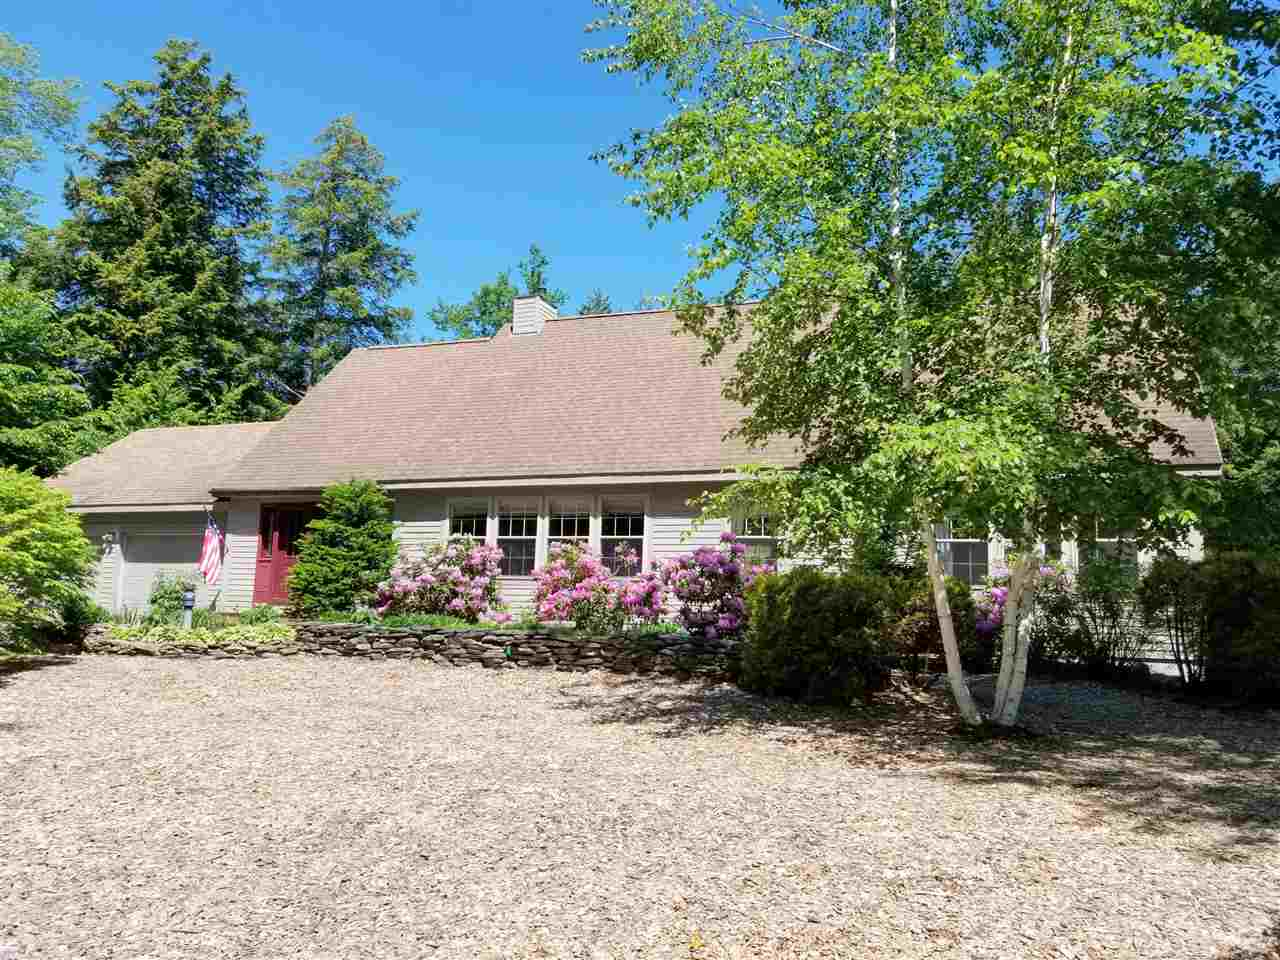 MLS 4801709: 19 Forest Road, Grantham NH